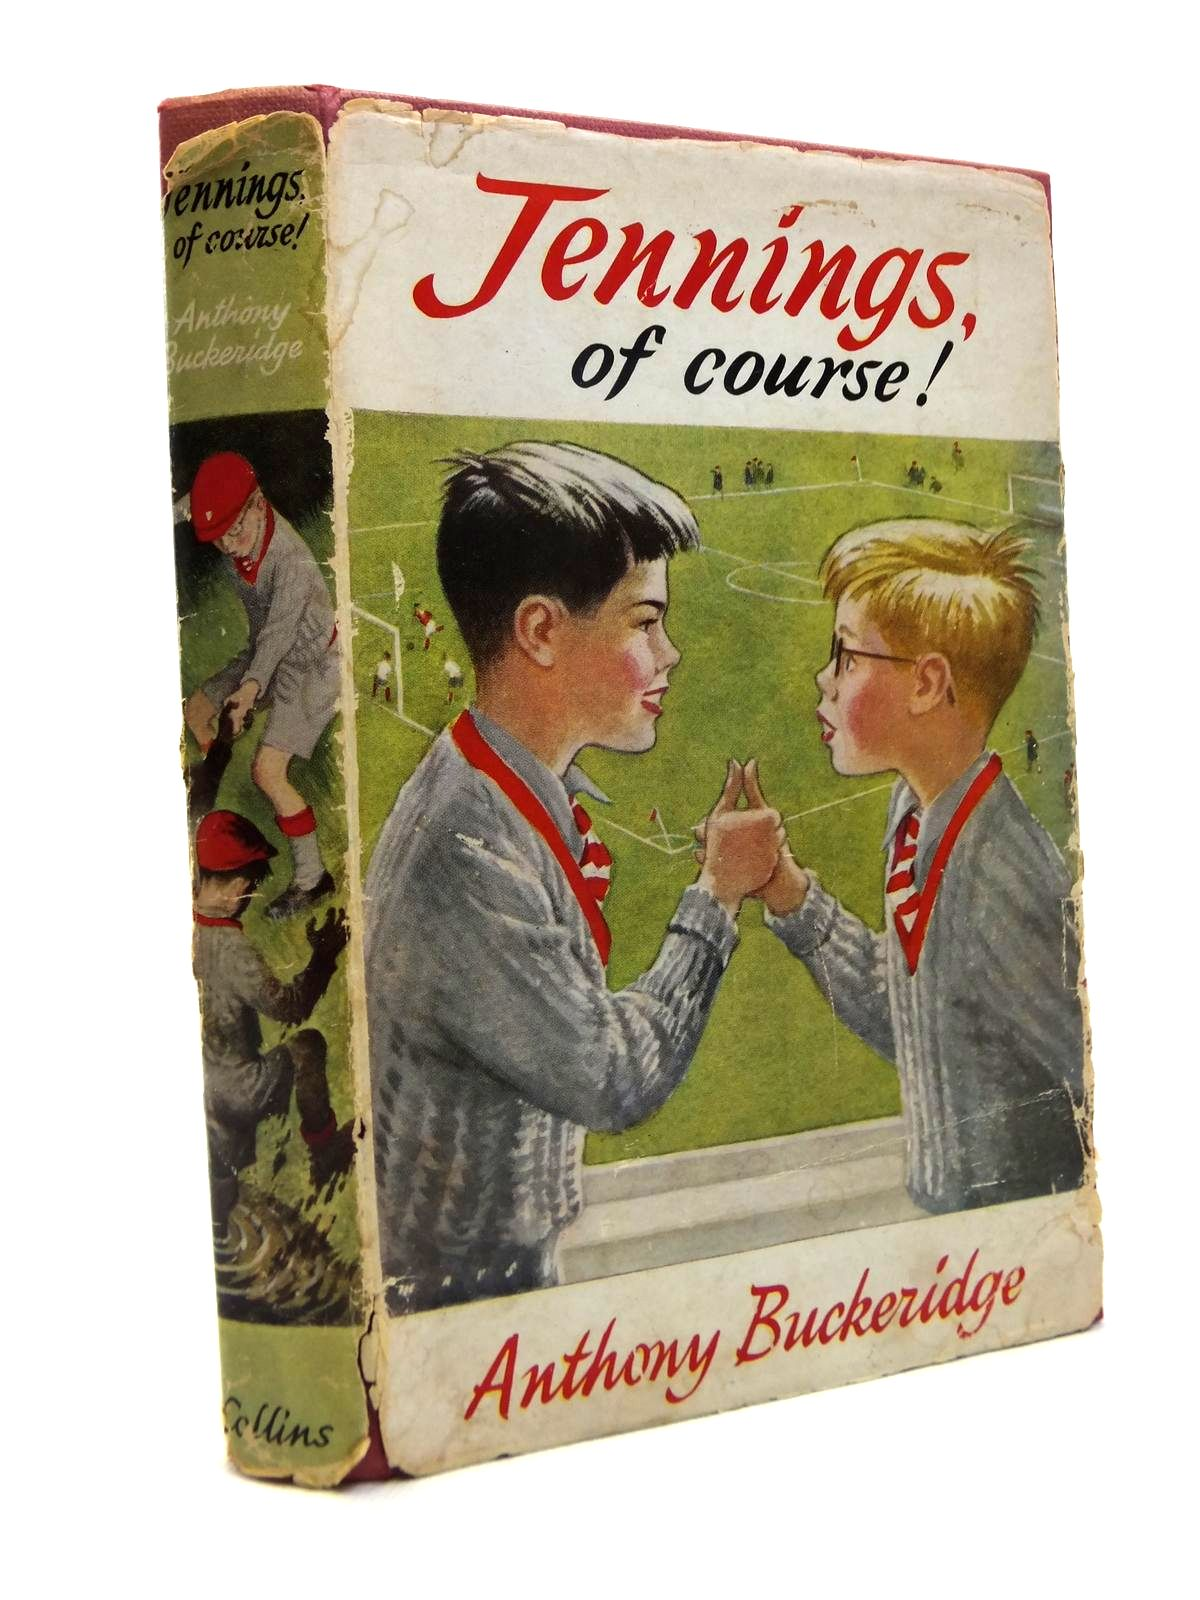 Photo of JENNINGS, OF COURSE!